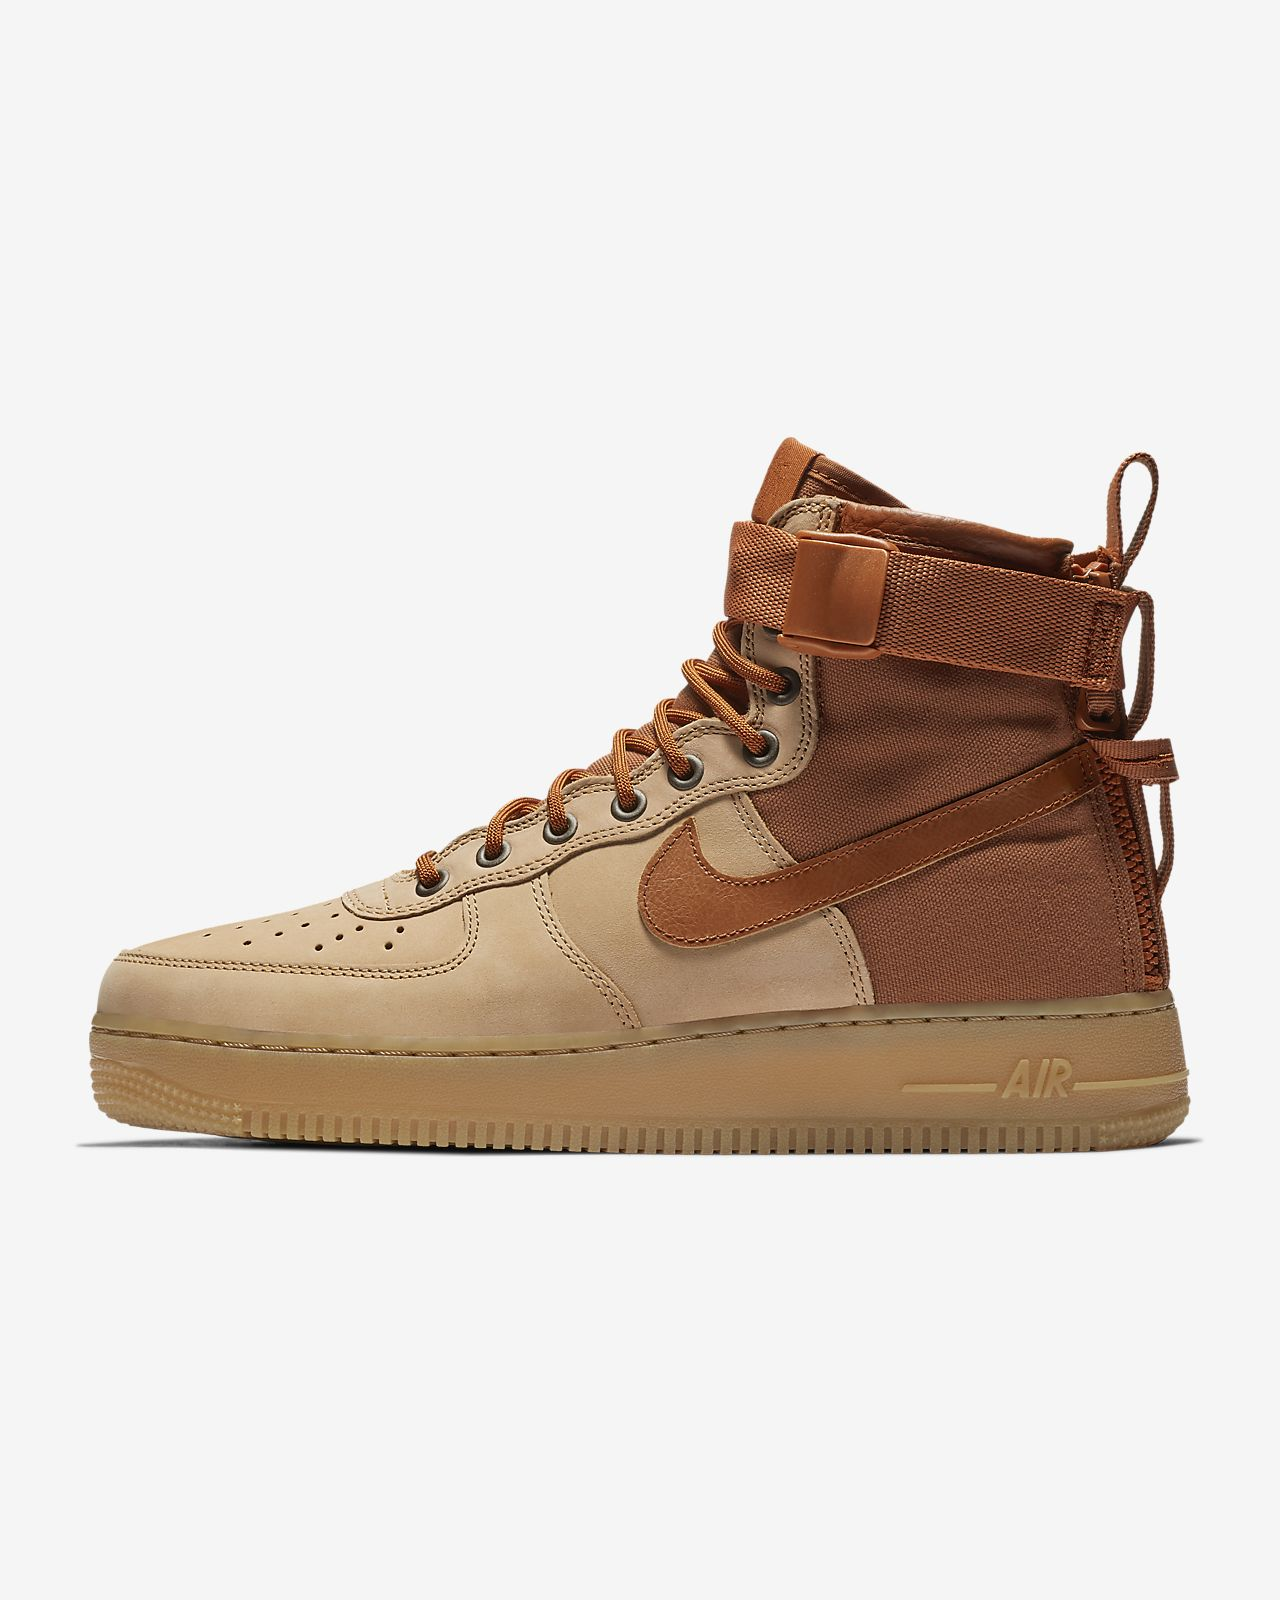 buy popular 7c0a4 adf3c ... Chaussure Nike SF Air Force 1 Mid Premium pour Homme